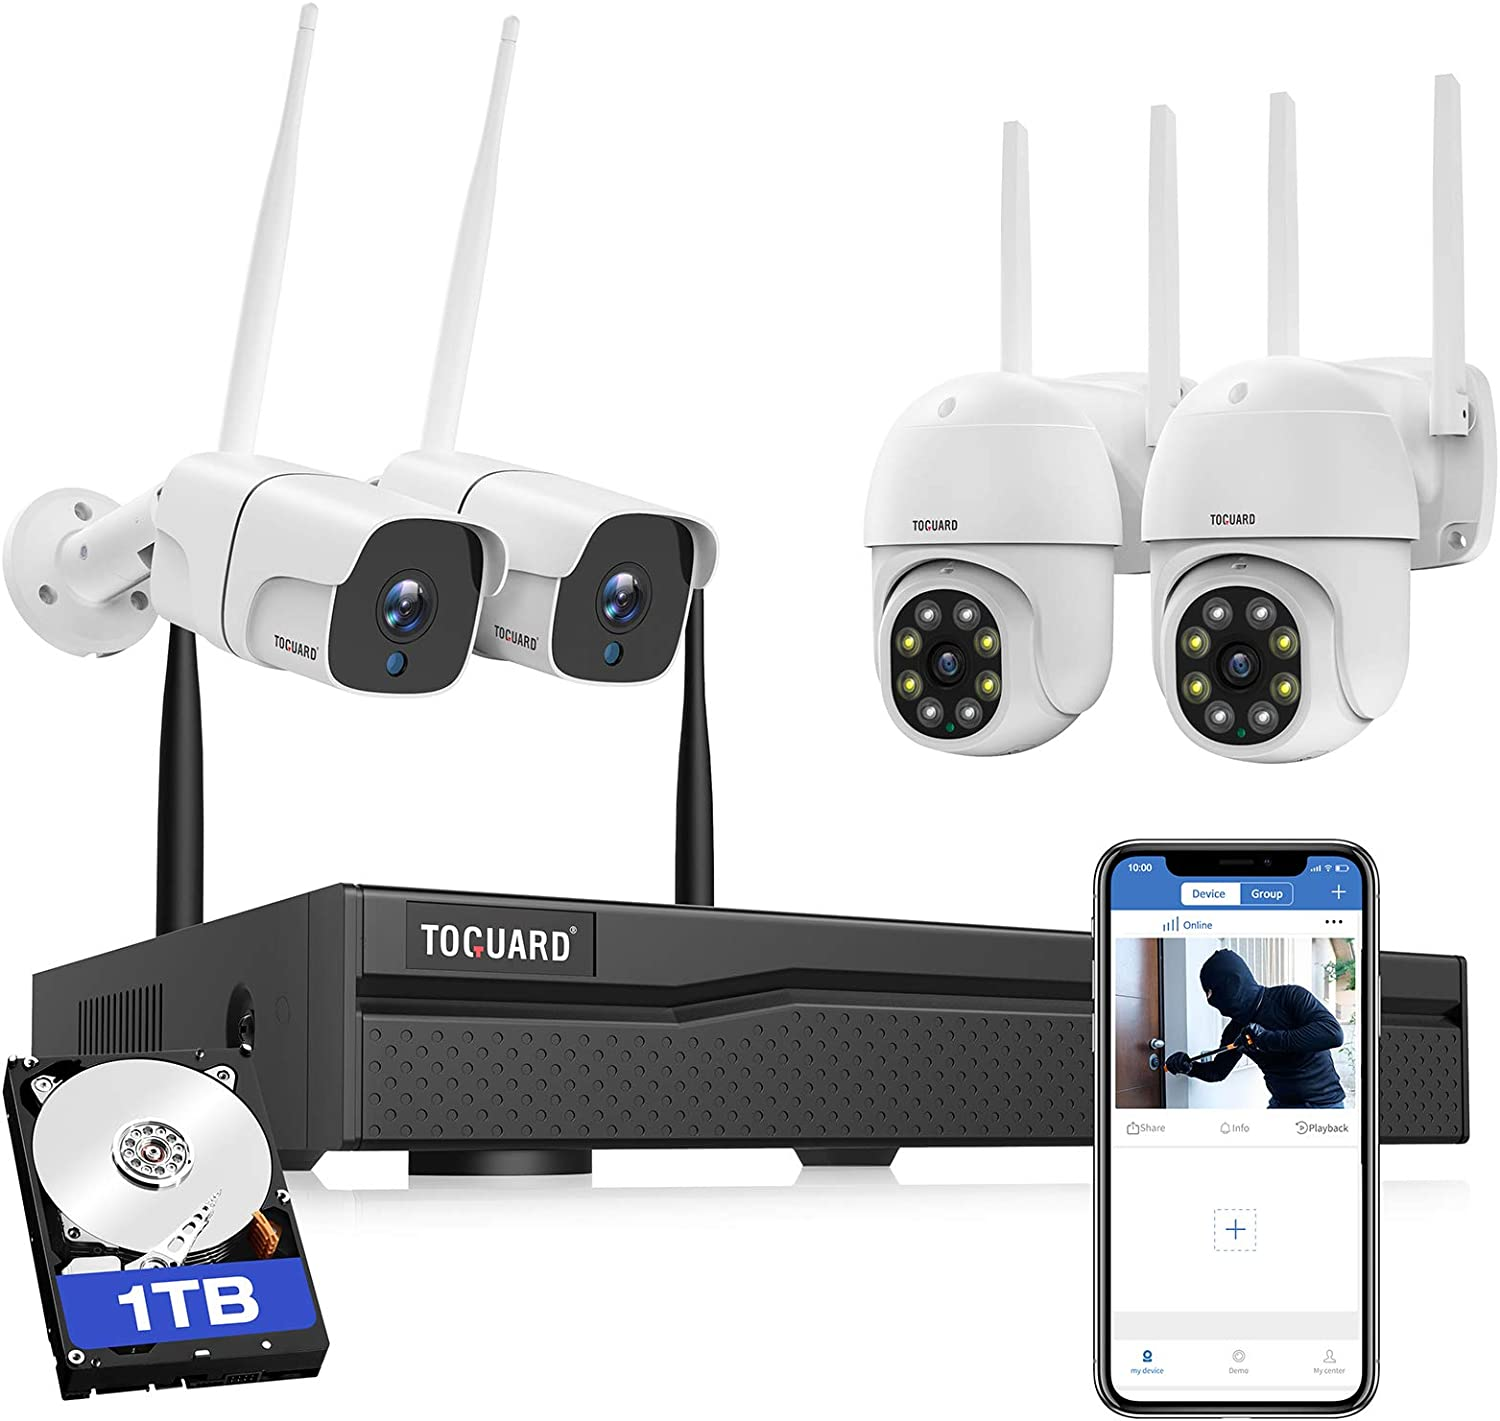 TOGUAGD Wireless Home Security Camera System Outdoor PTZ Cameras and Bullet Cameras with 1TB Hard Drive 3MP WiFi Surveillance NVR Kits Full Color Night Vision Motion Alert